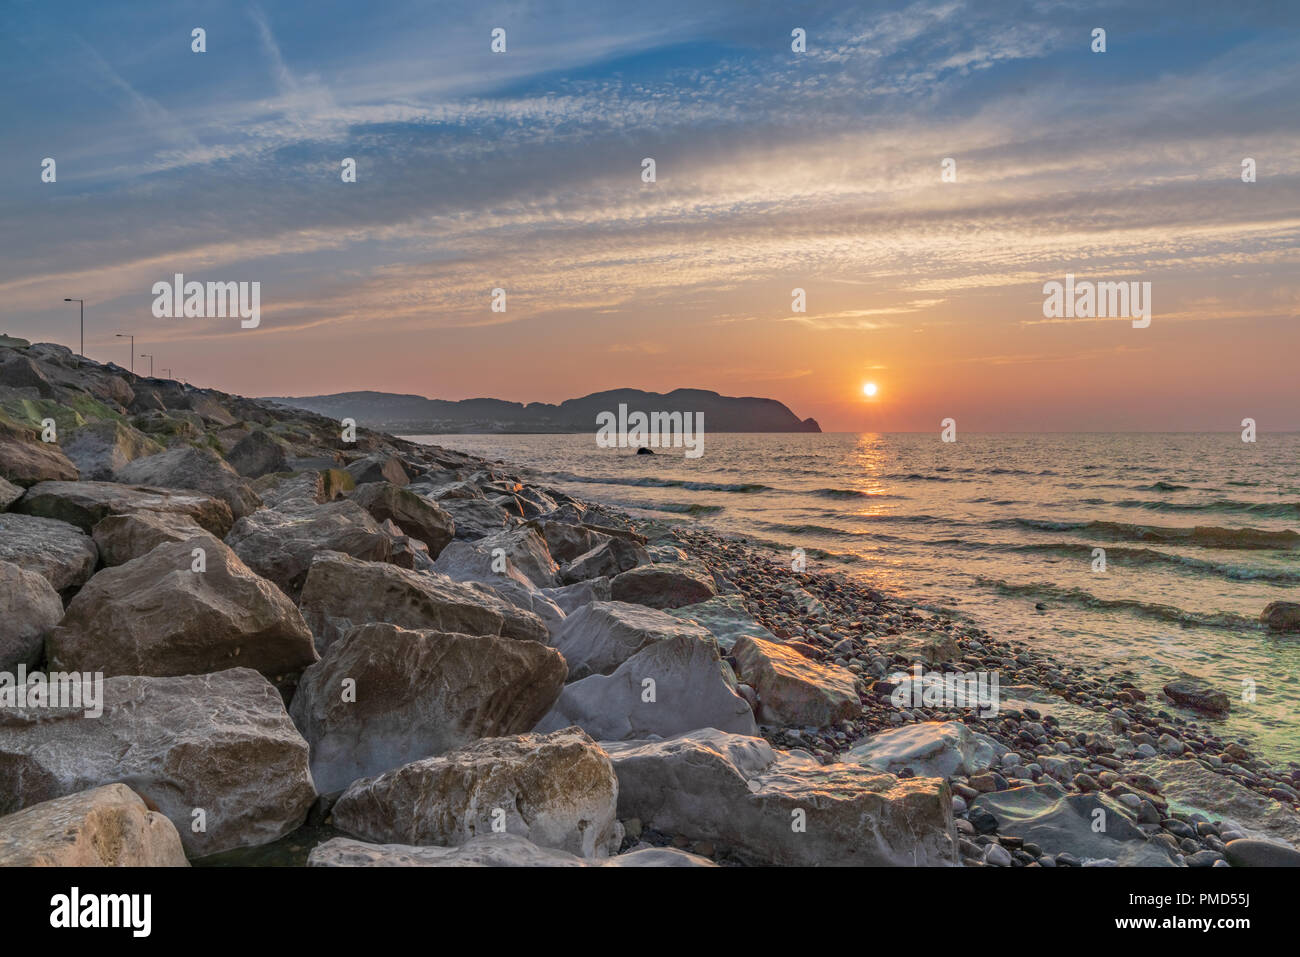 Sunset over the Welsh coast in Rhos-on-Sea, Conwy, Wales, UK - Stock Image